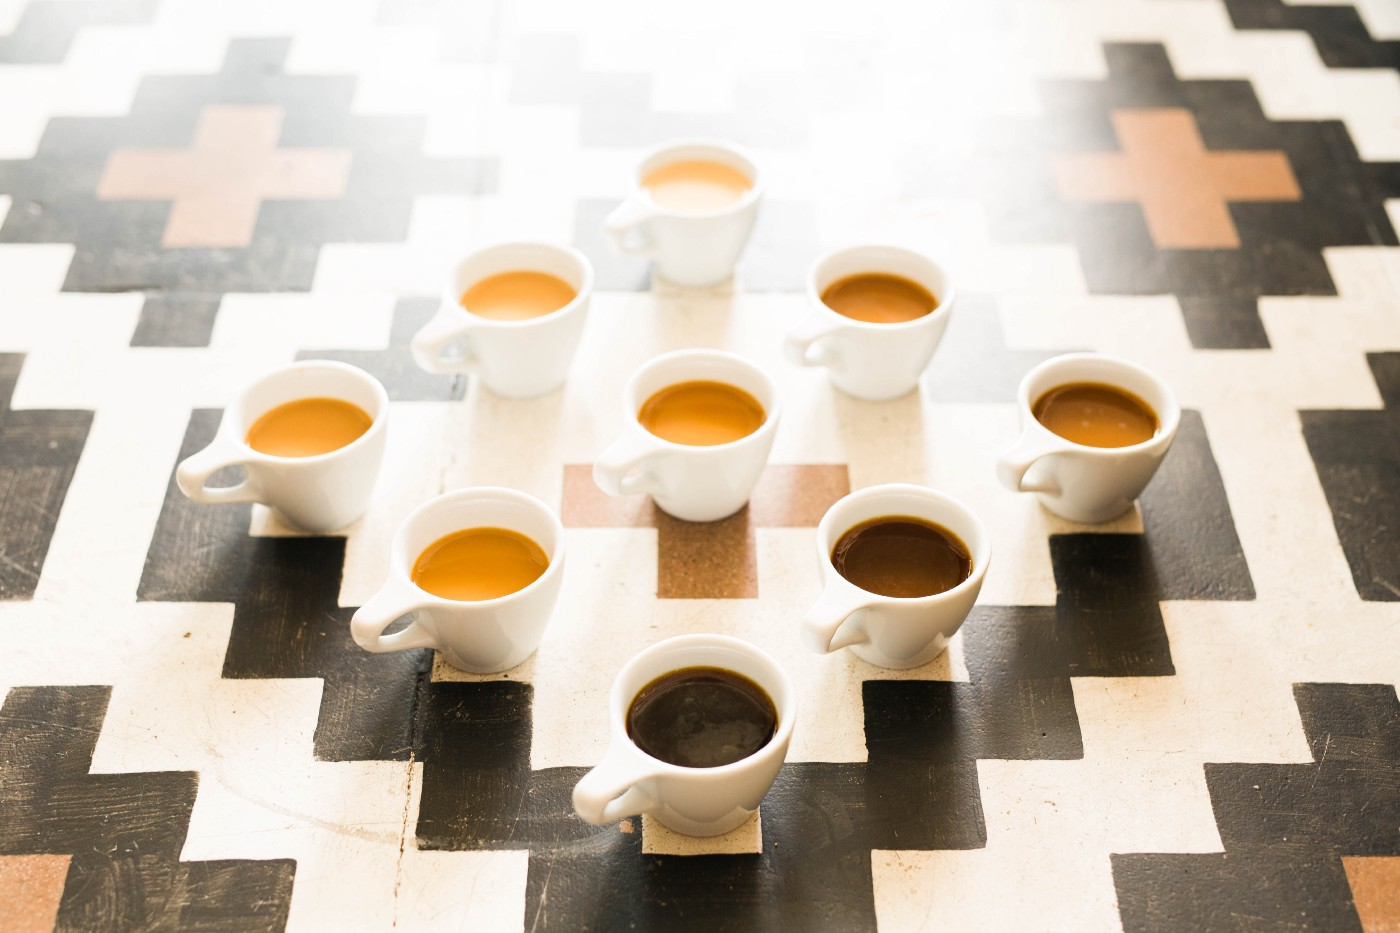 Lots and lots and lots up cups of coffee organized by the shade of the brew foam from light to dark, organized in a diamond.